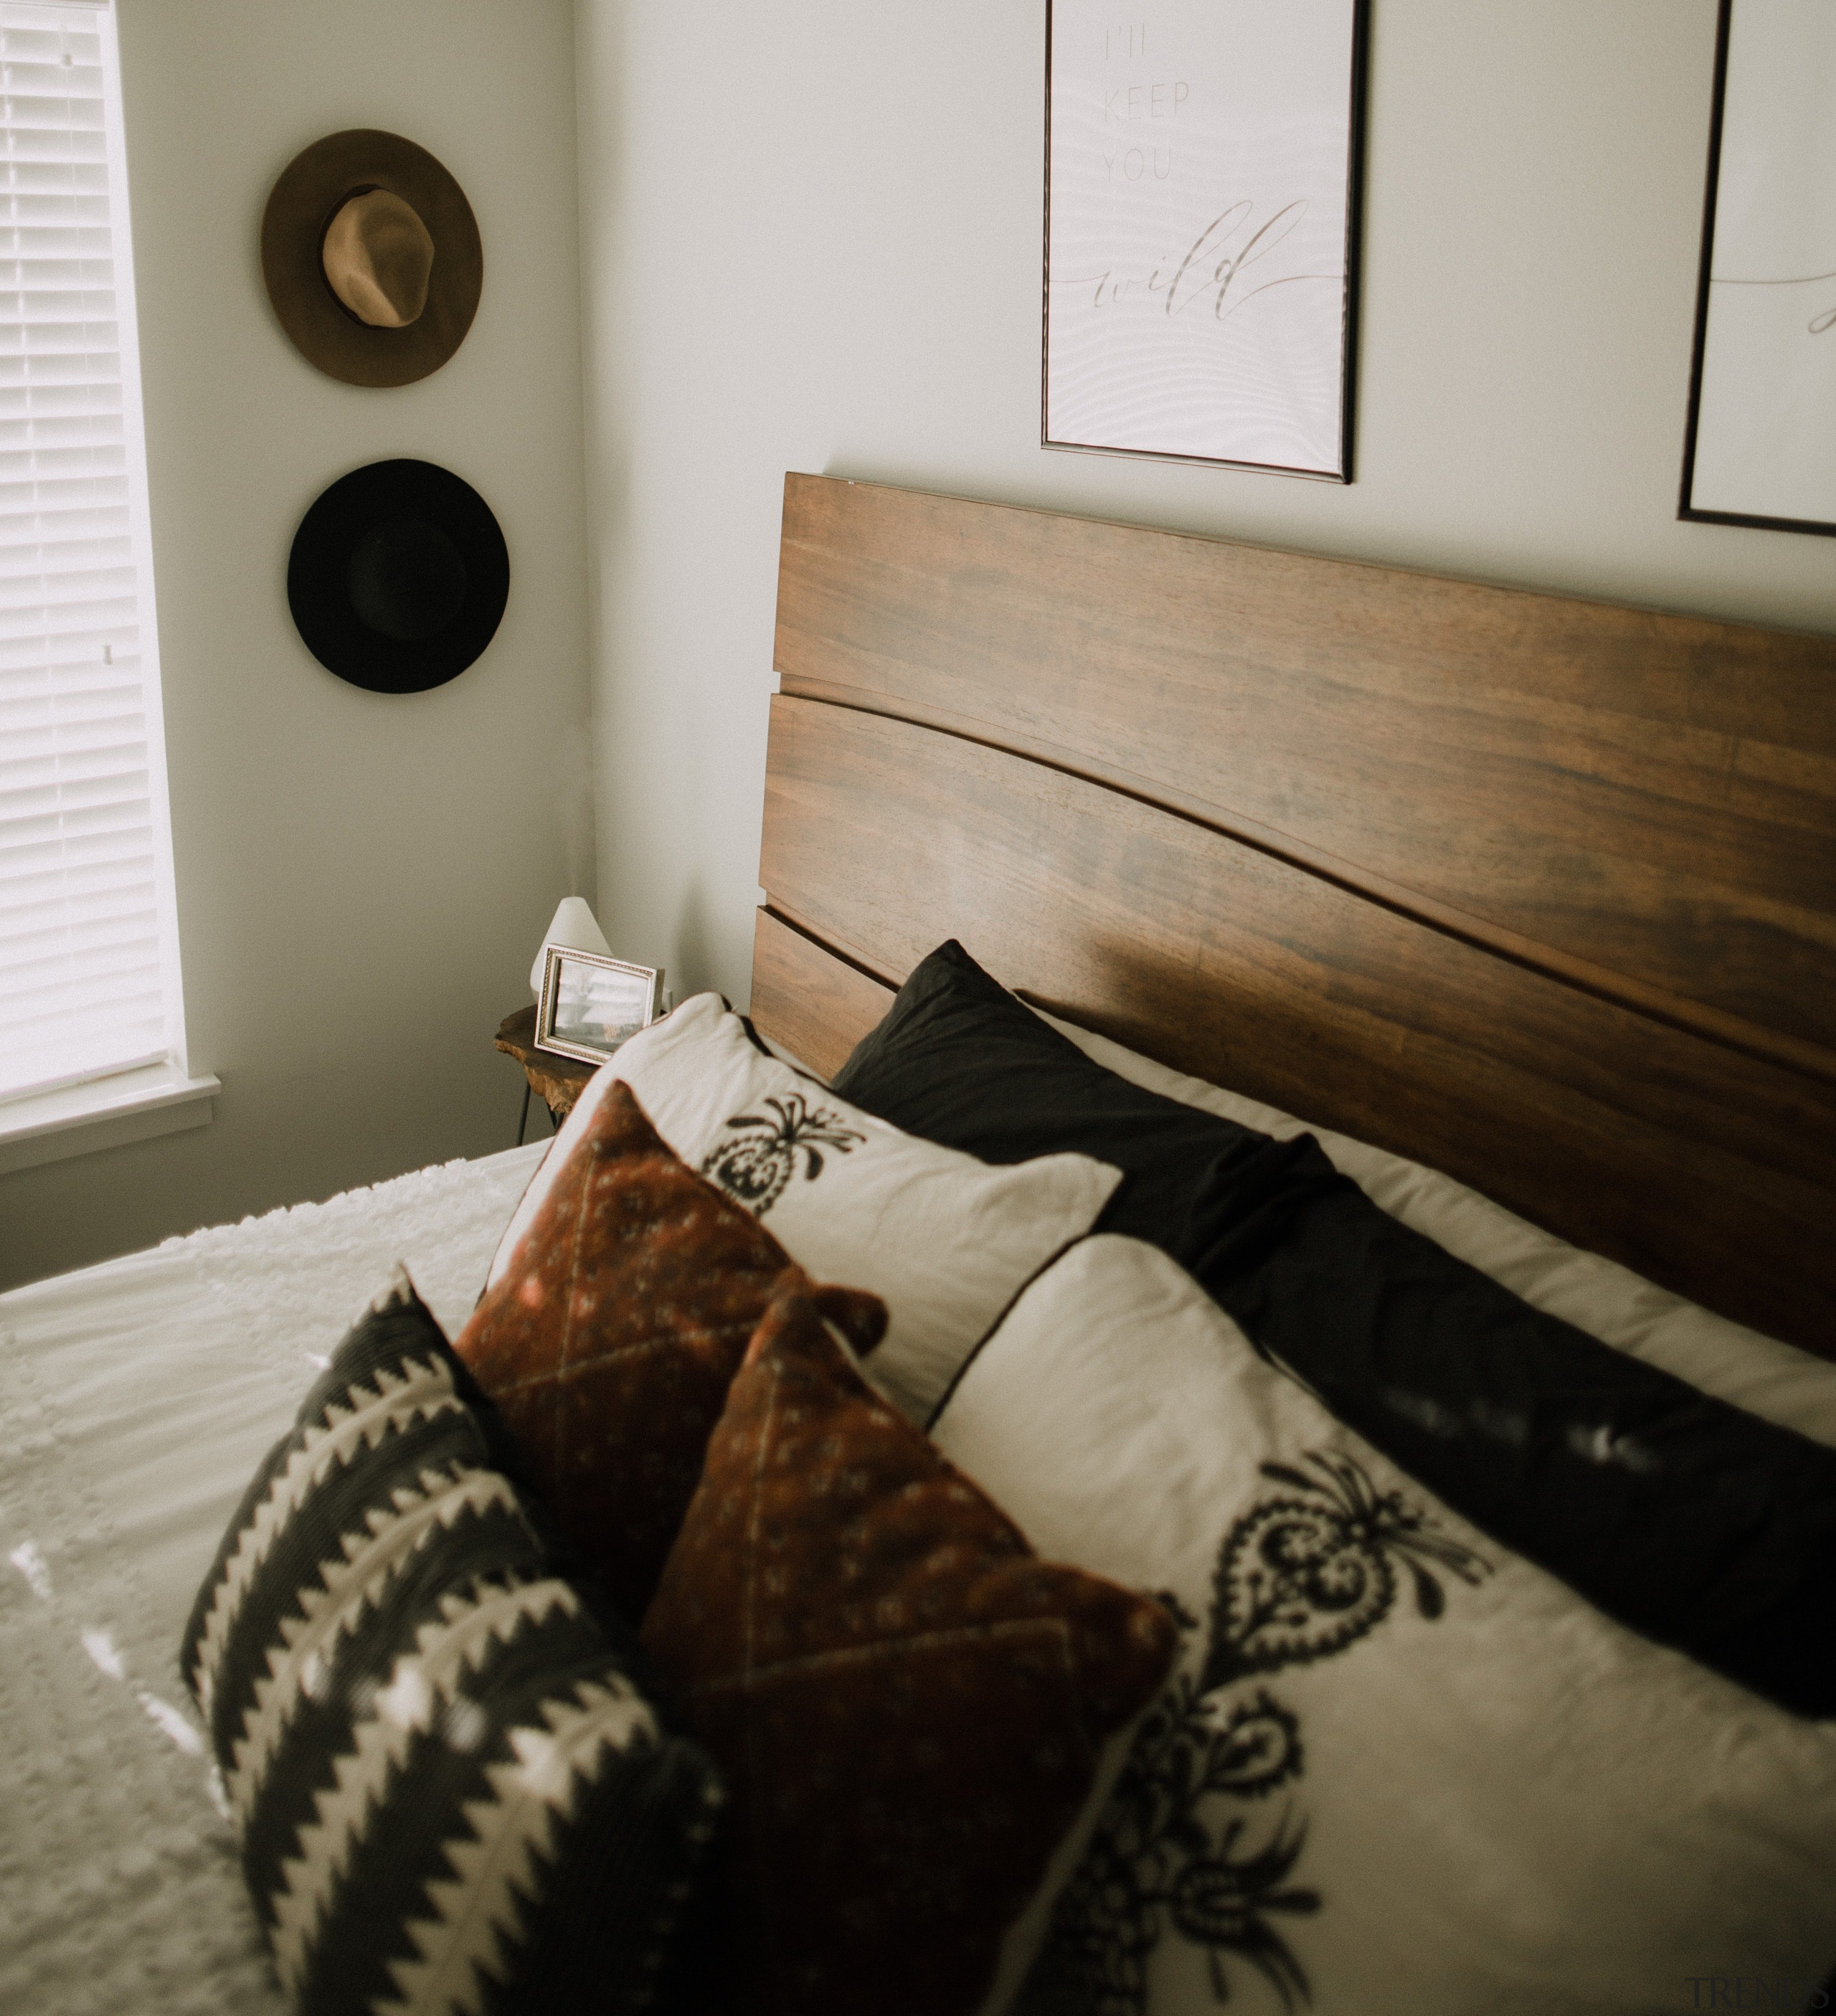 Pillows on bed -